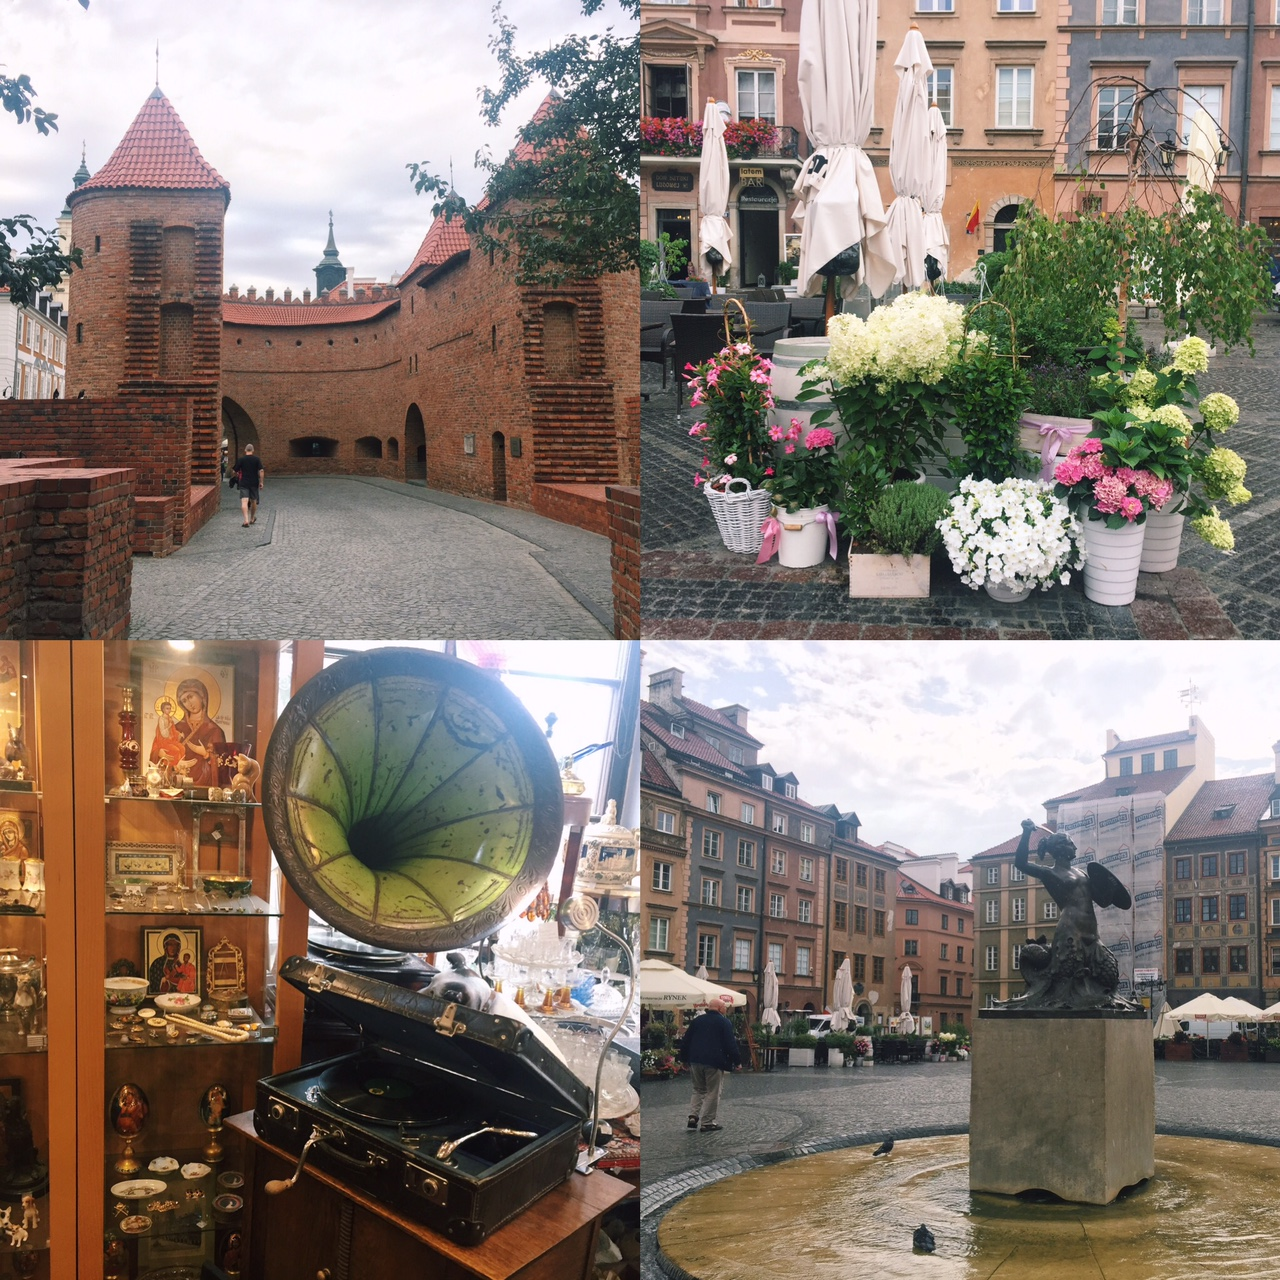 while walking around Warsaw - wish I could have around that record player I found in an antique shop home!